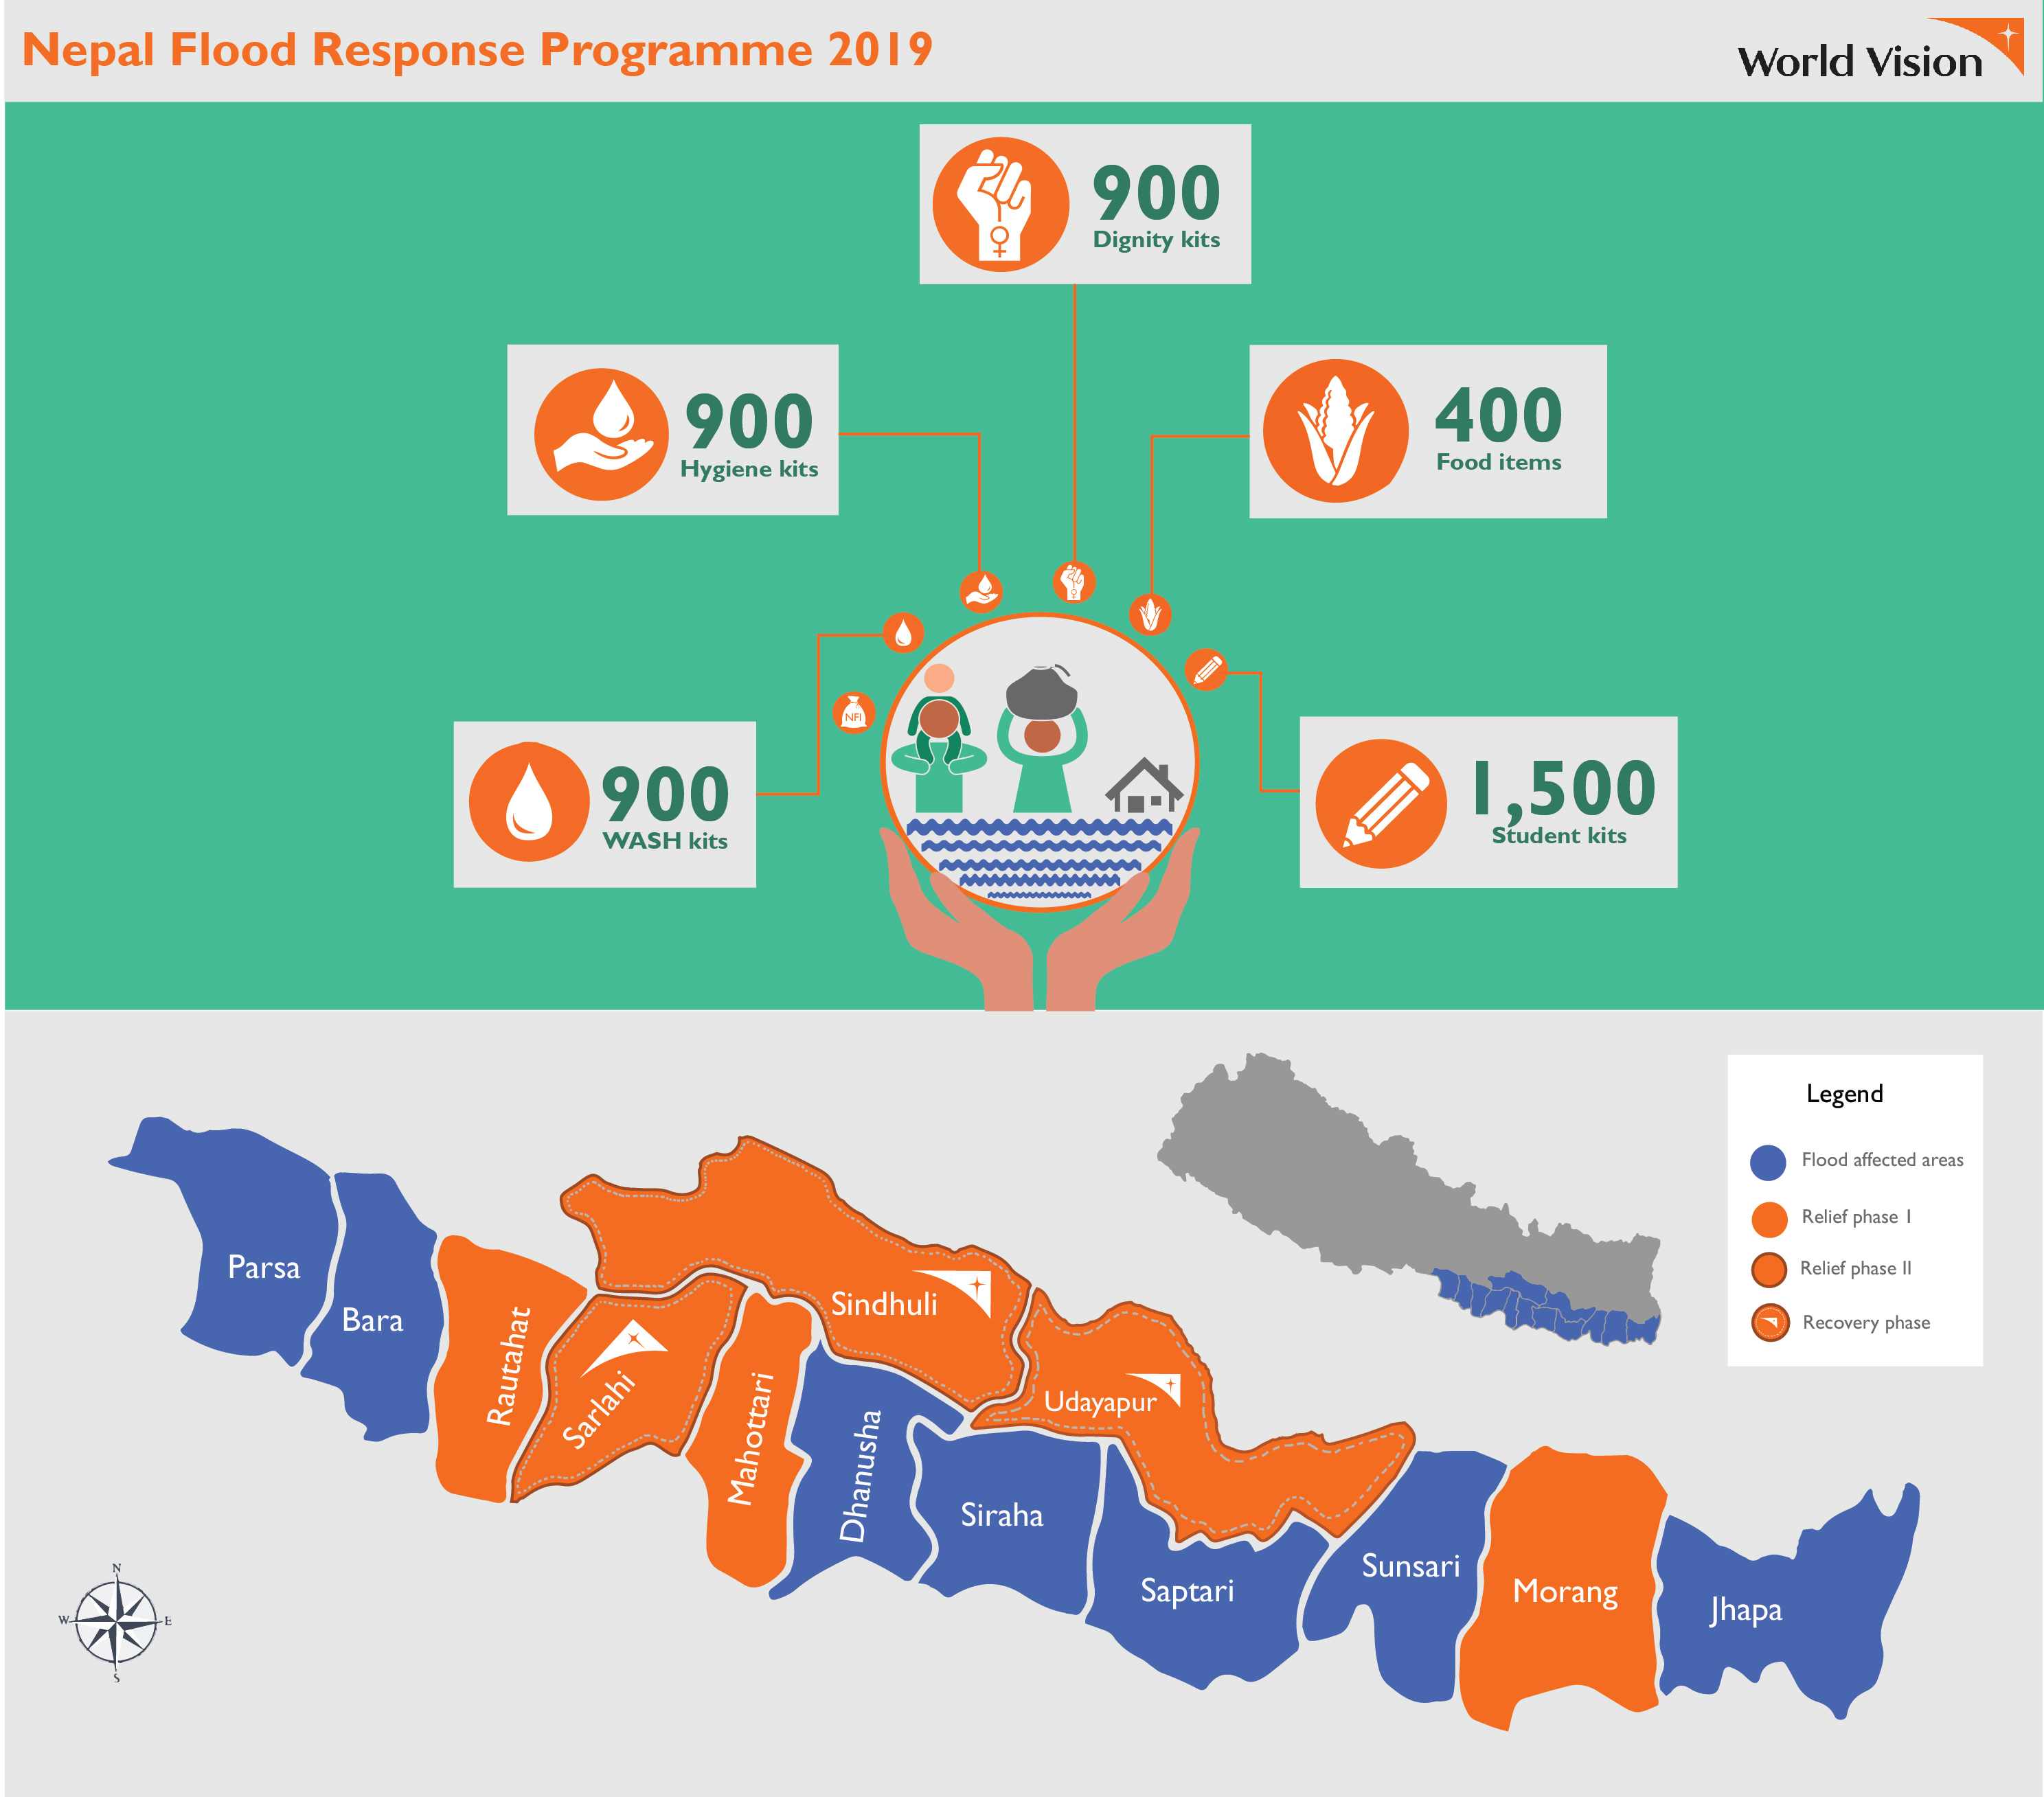 Relief distribution phase II infographic